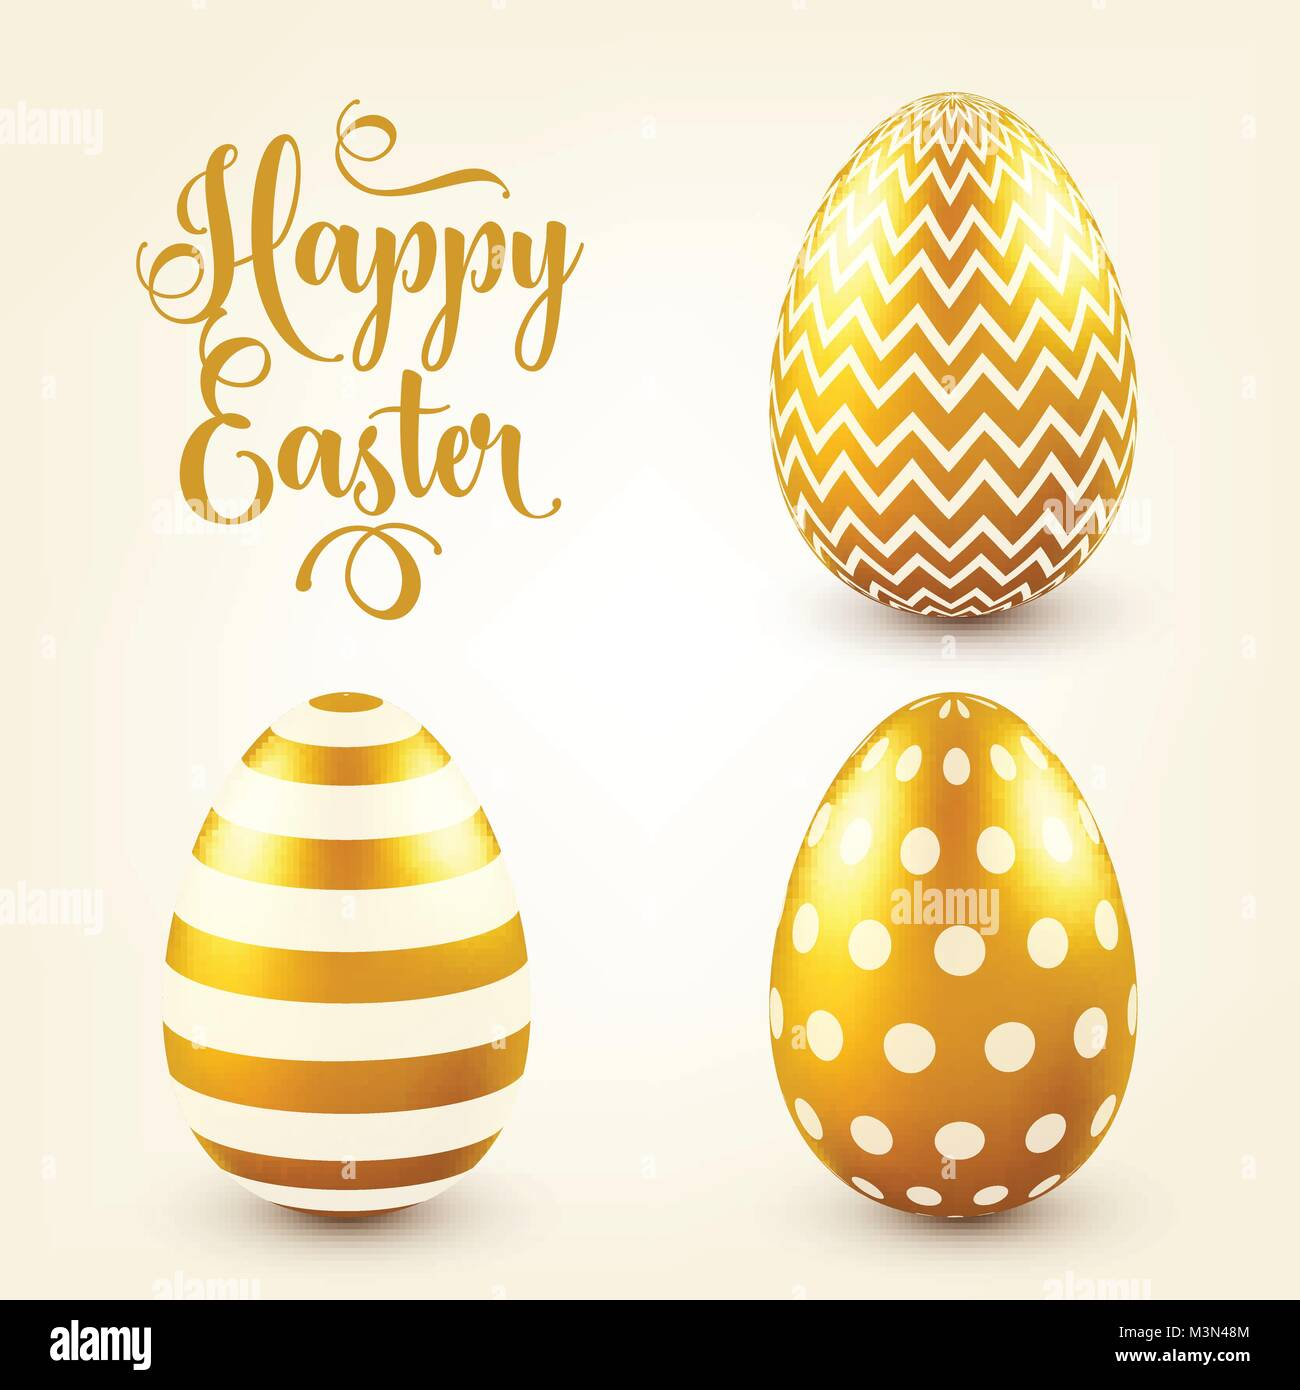 Easter golden egg with calligraphic lettering greetings easter golden egg with calligraphic lettering greetings traditional spring holidays in april or march sunday eggs and gold m4hsunfo